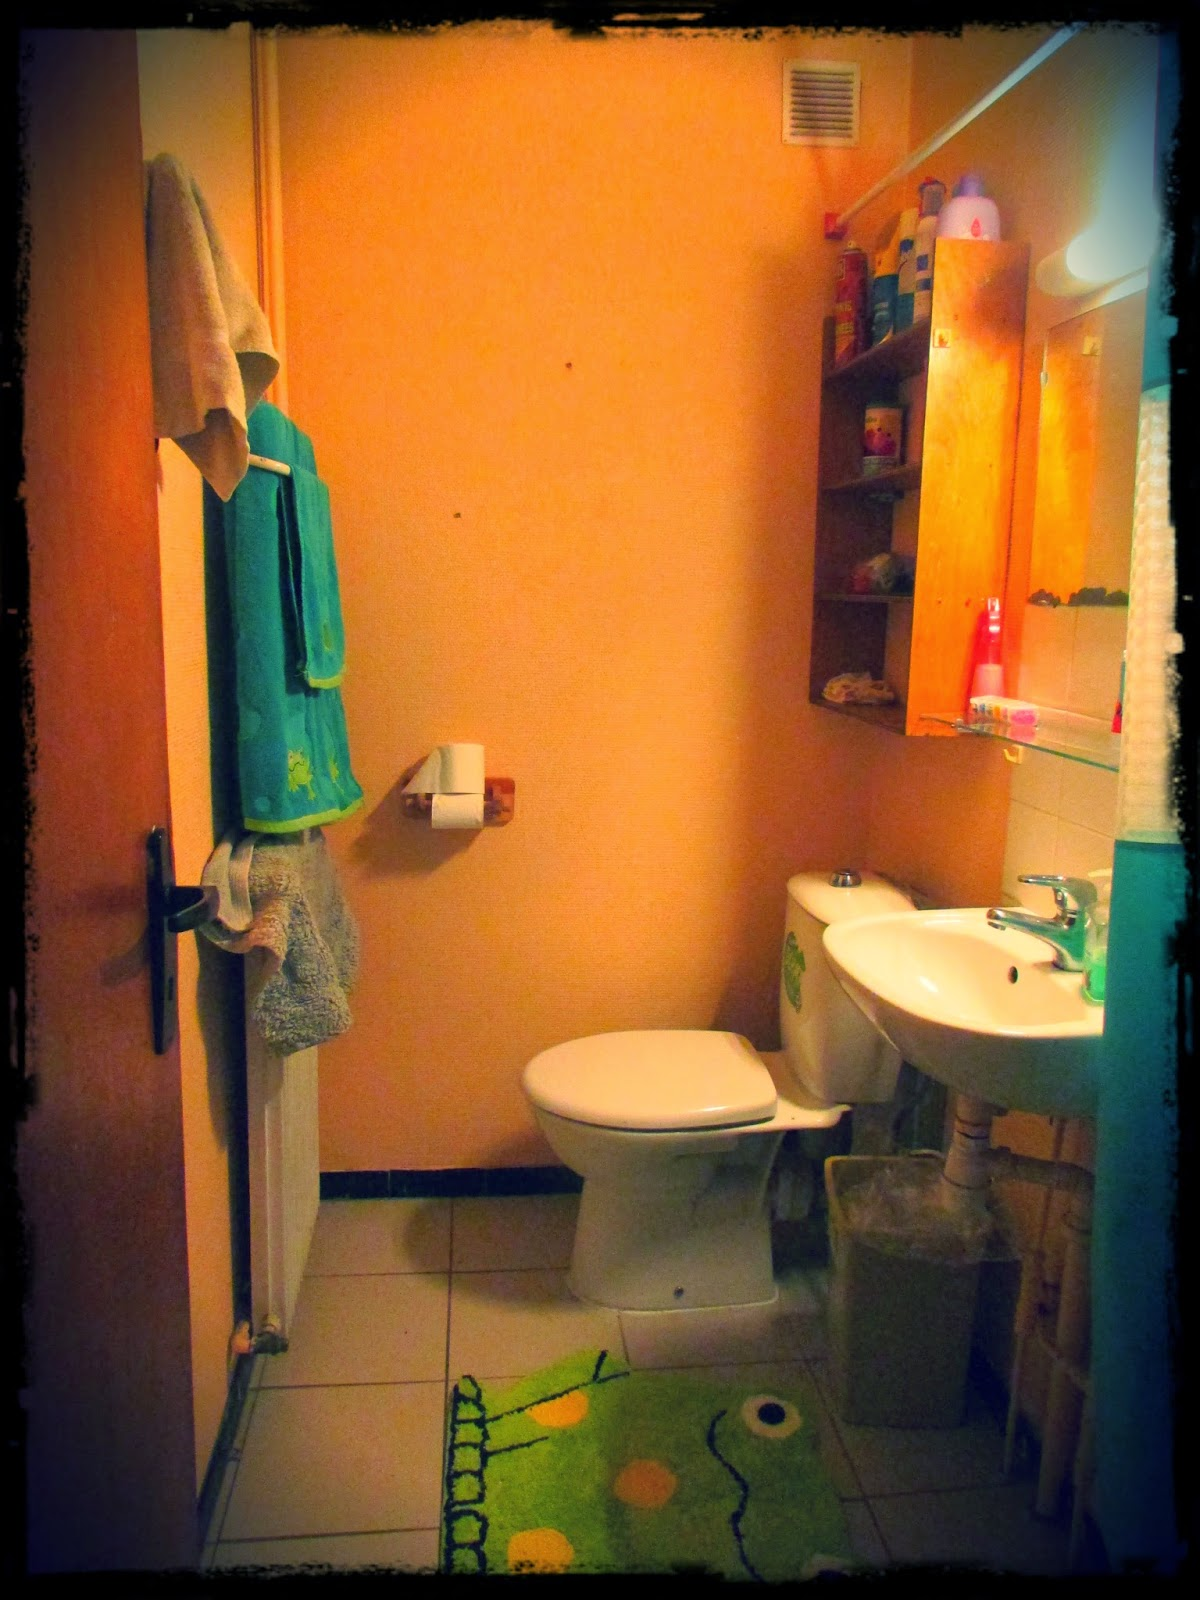 Our only 3 piece bathroom.We have two bathrooms with a shower and a sink and one with just a toilet.Very interesting, France. Very interesting